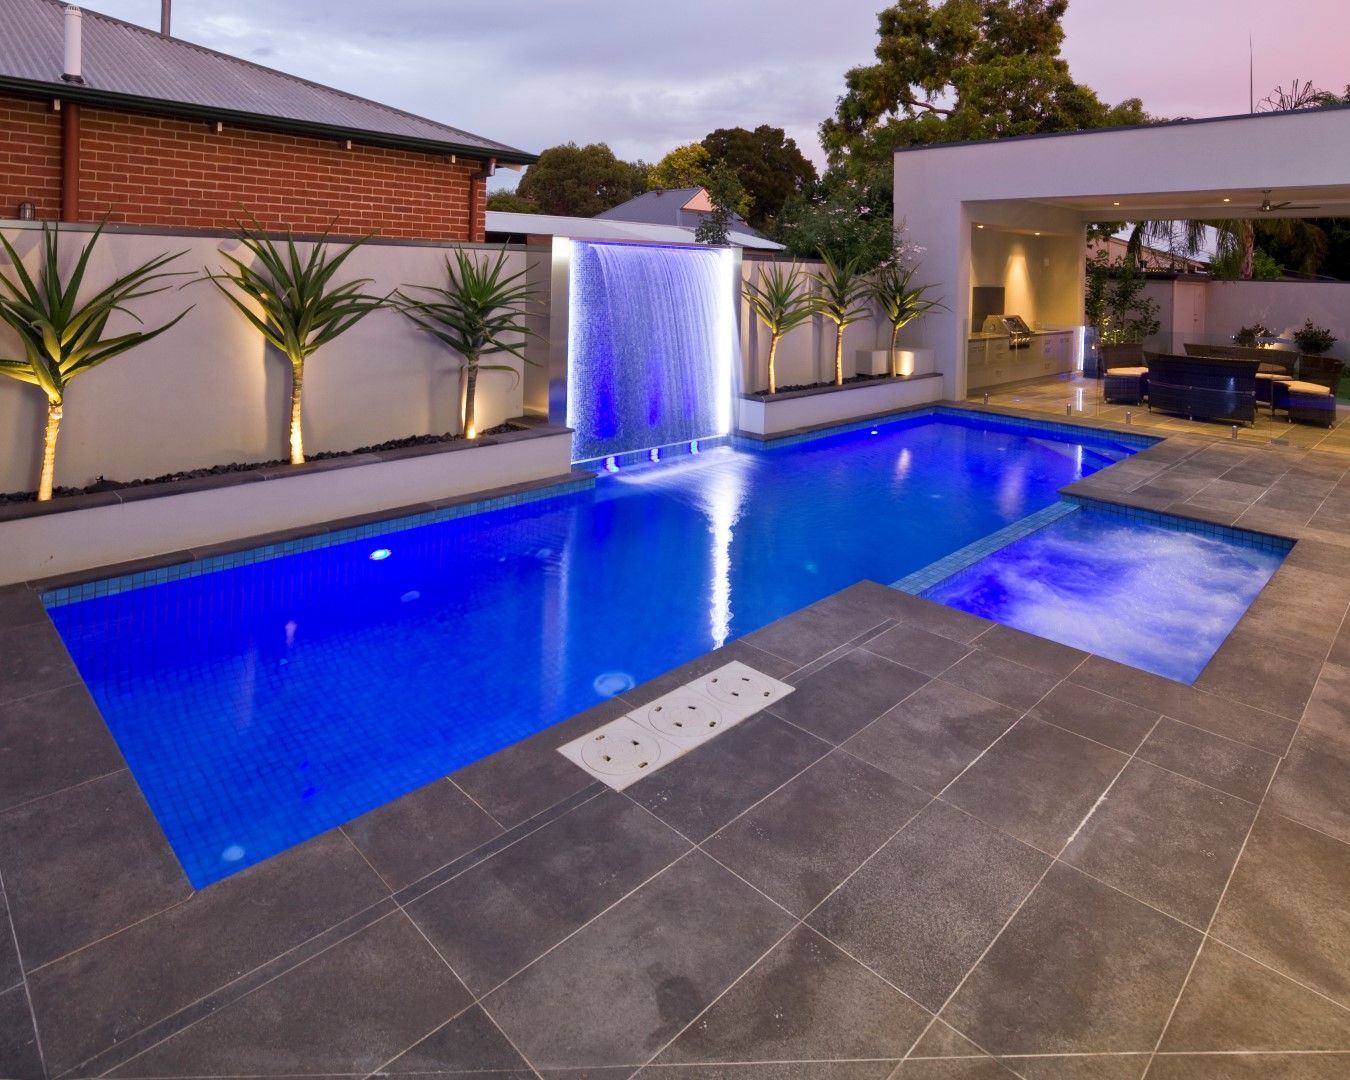 Concretepool swimmingpool freedompools resort pools - Best pool designs ...